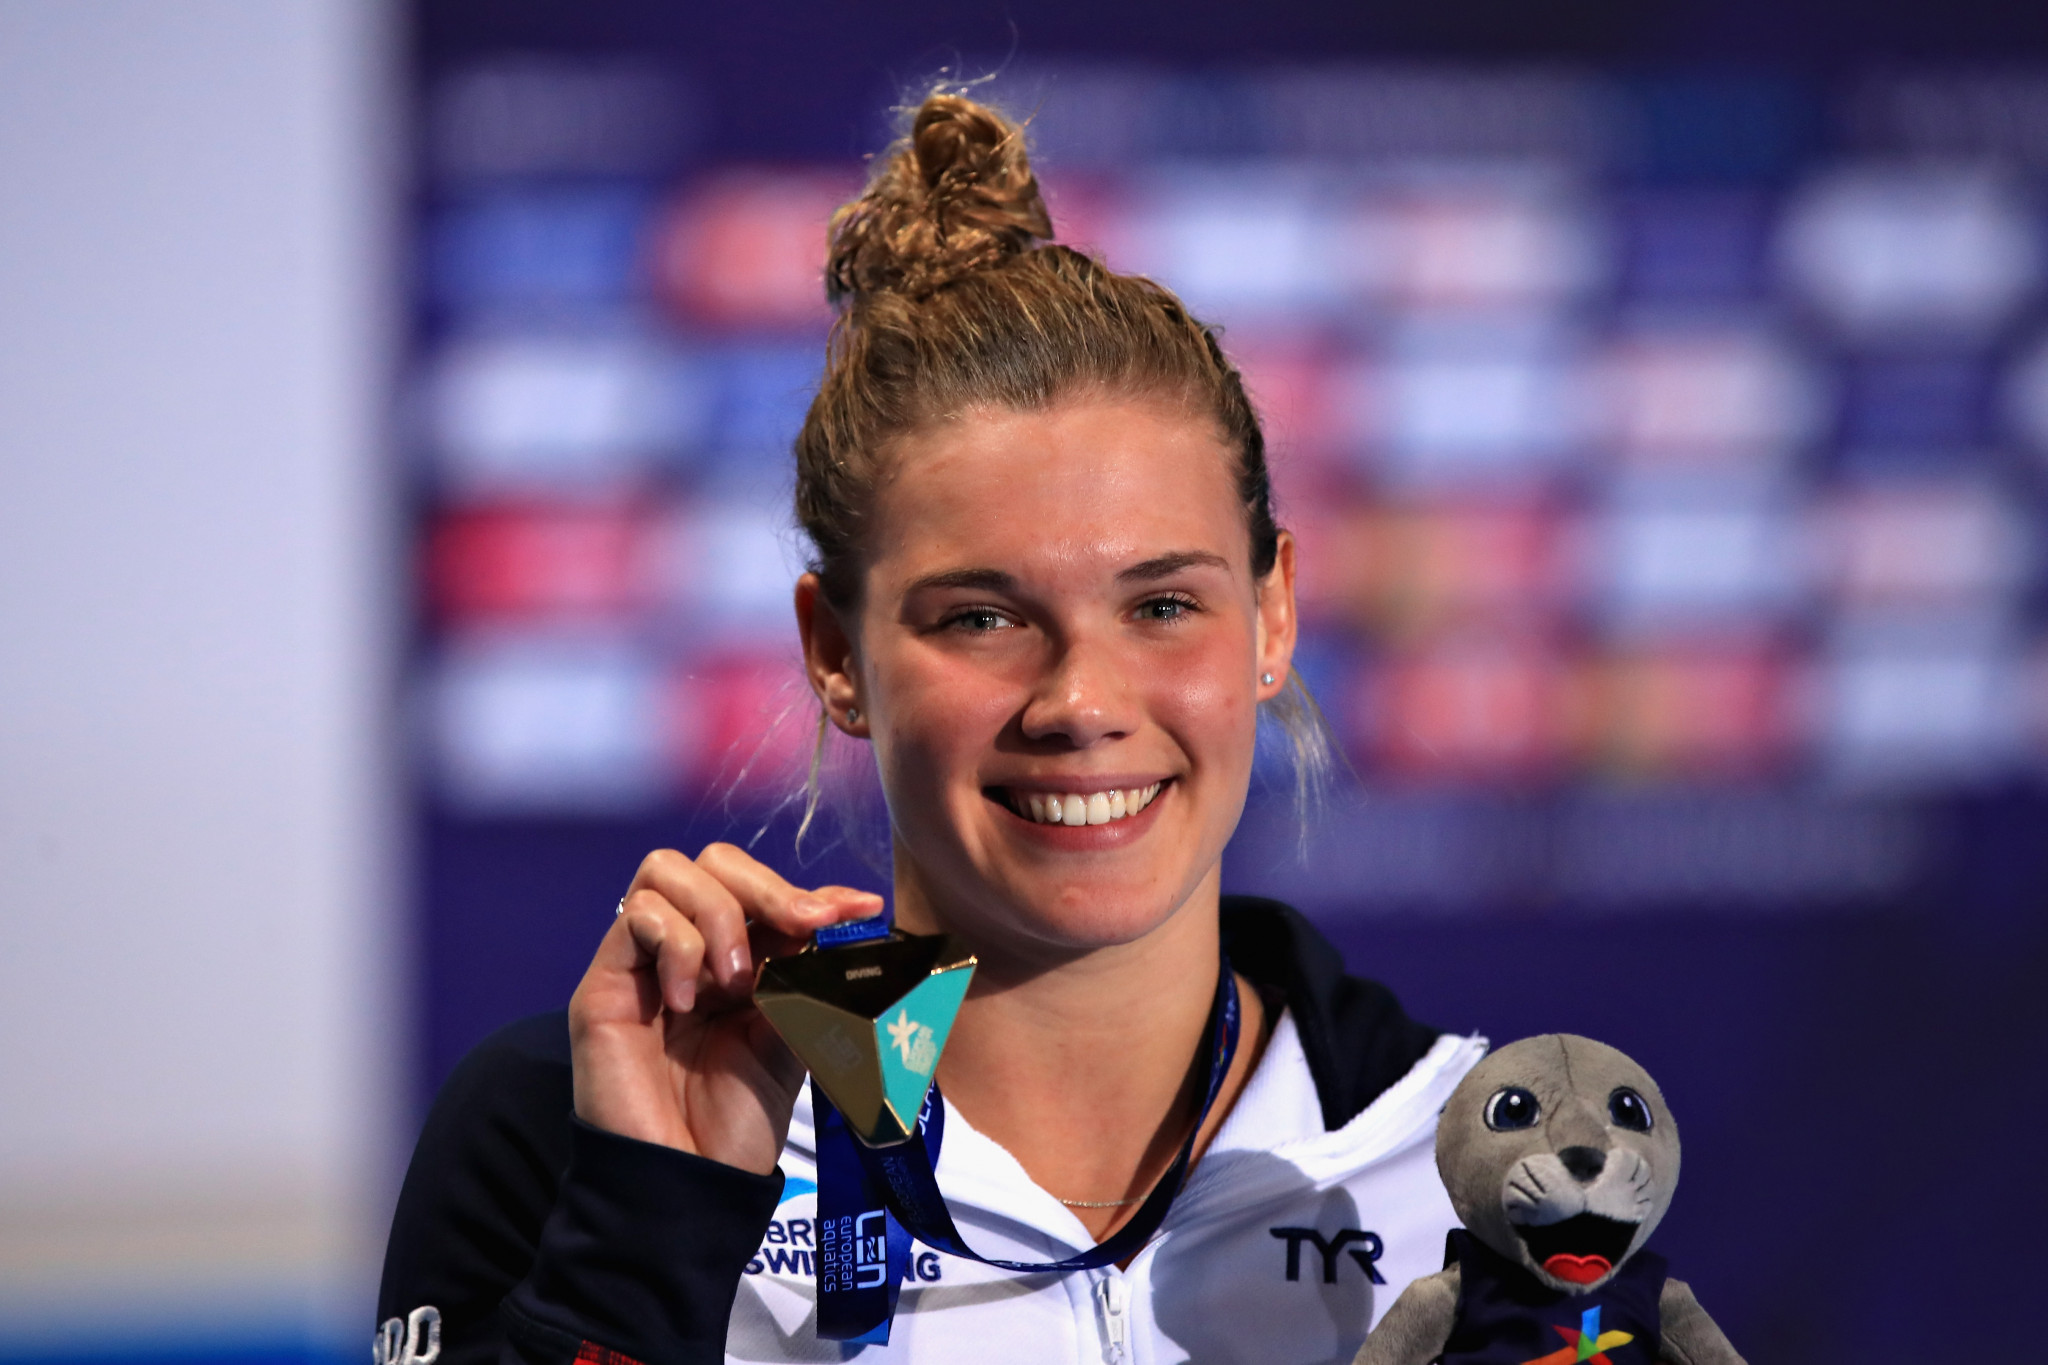 Reid produces superb final dive to win women's 3m springboard title at Glasgow 2018 European Championships